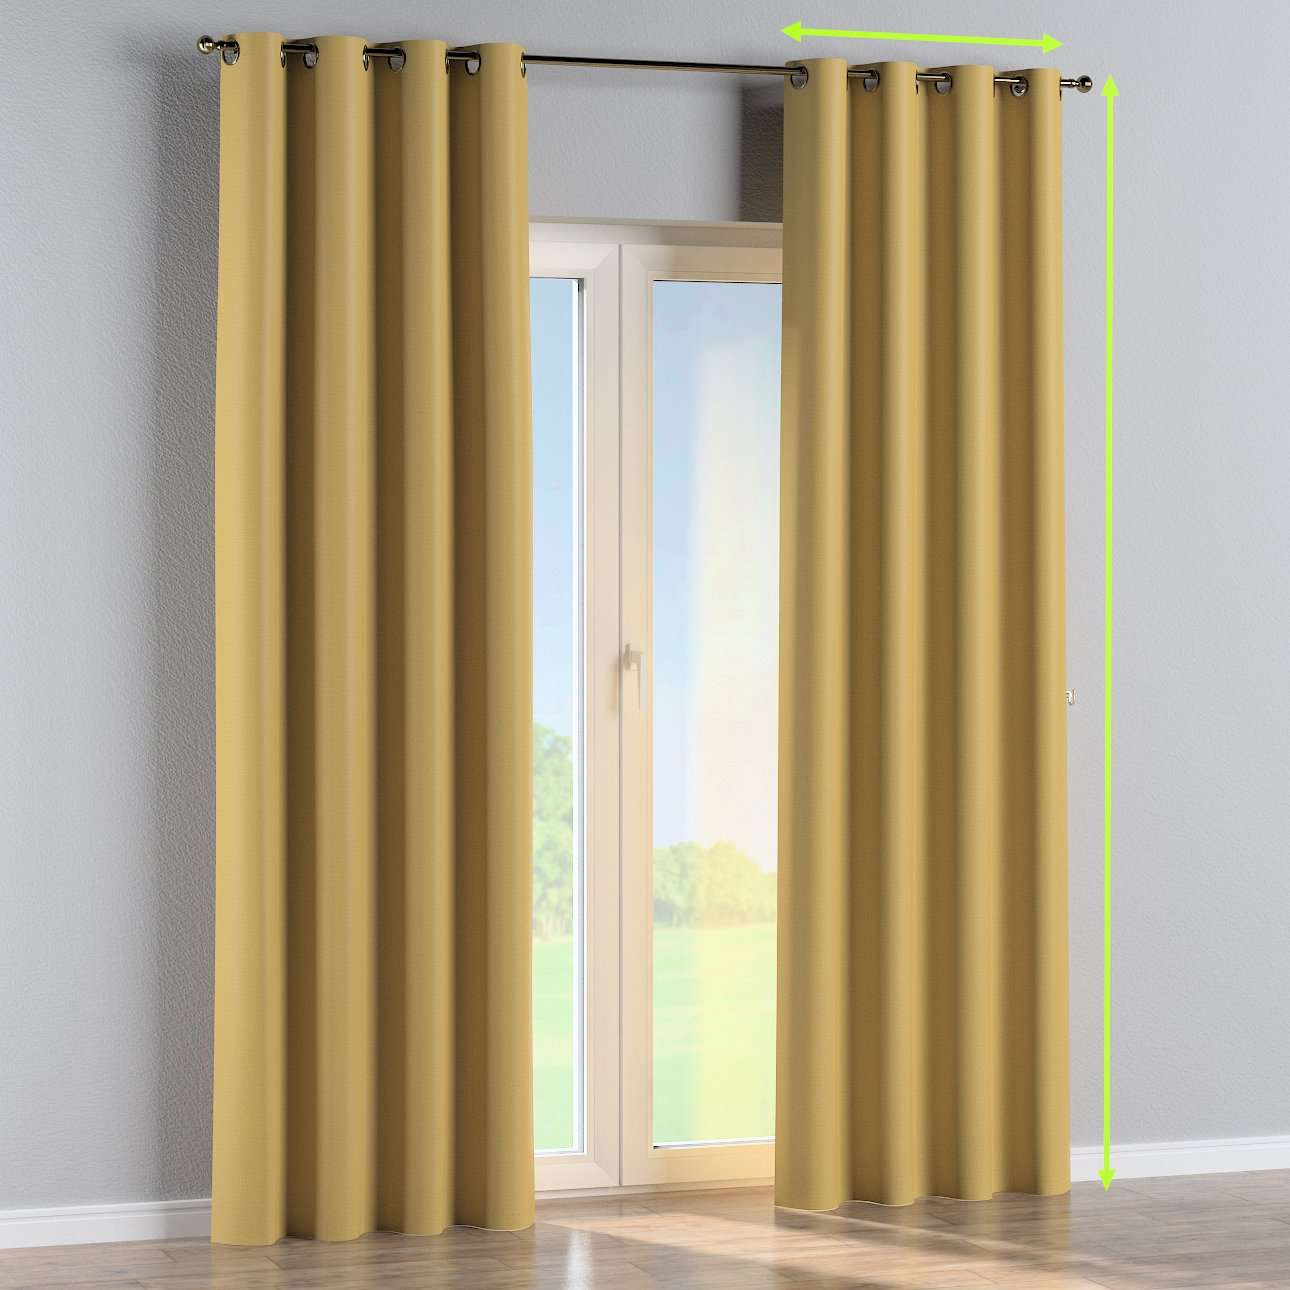 Eyelet curtain in collection Blackout, fabric: 269-68